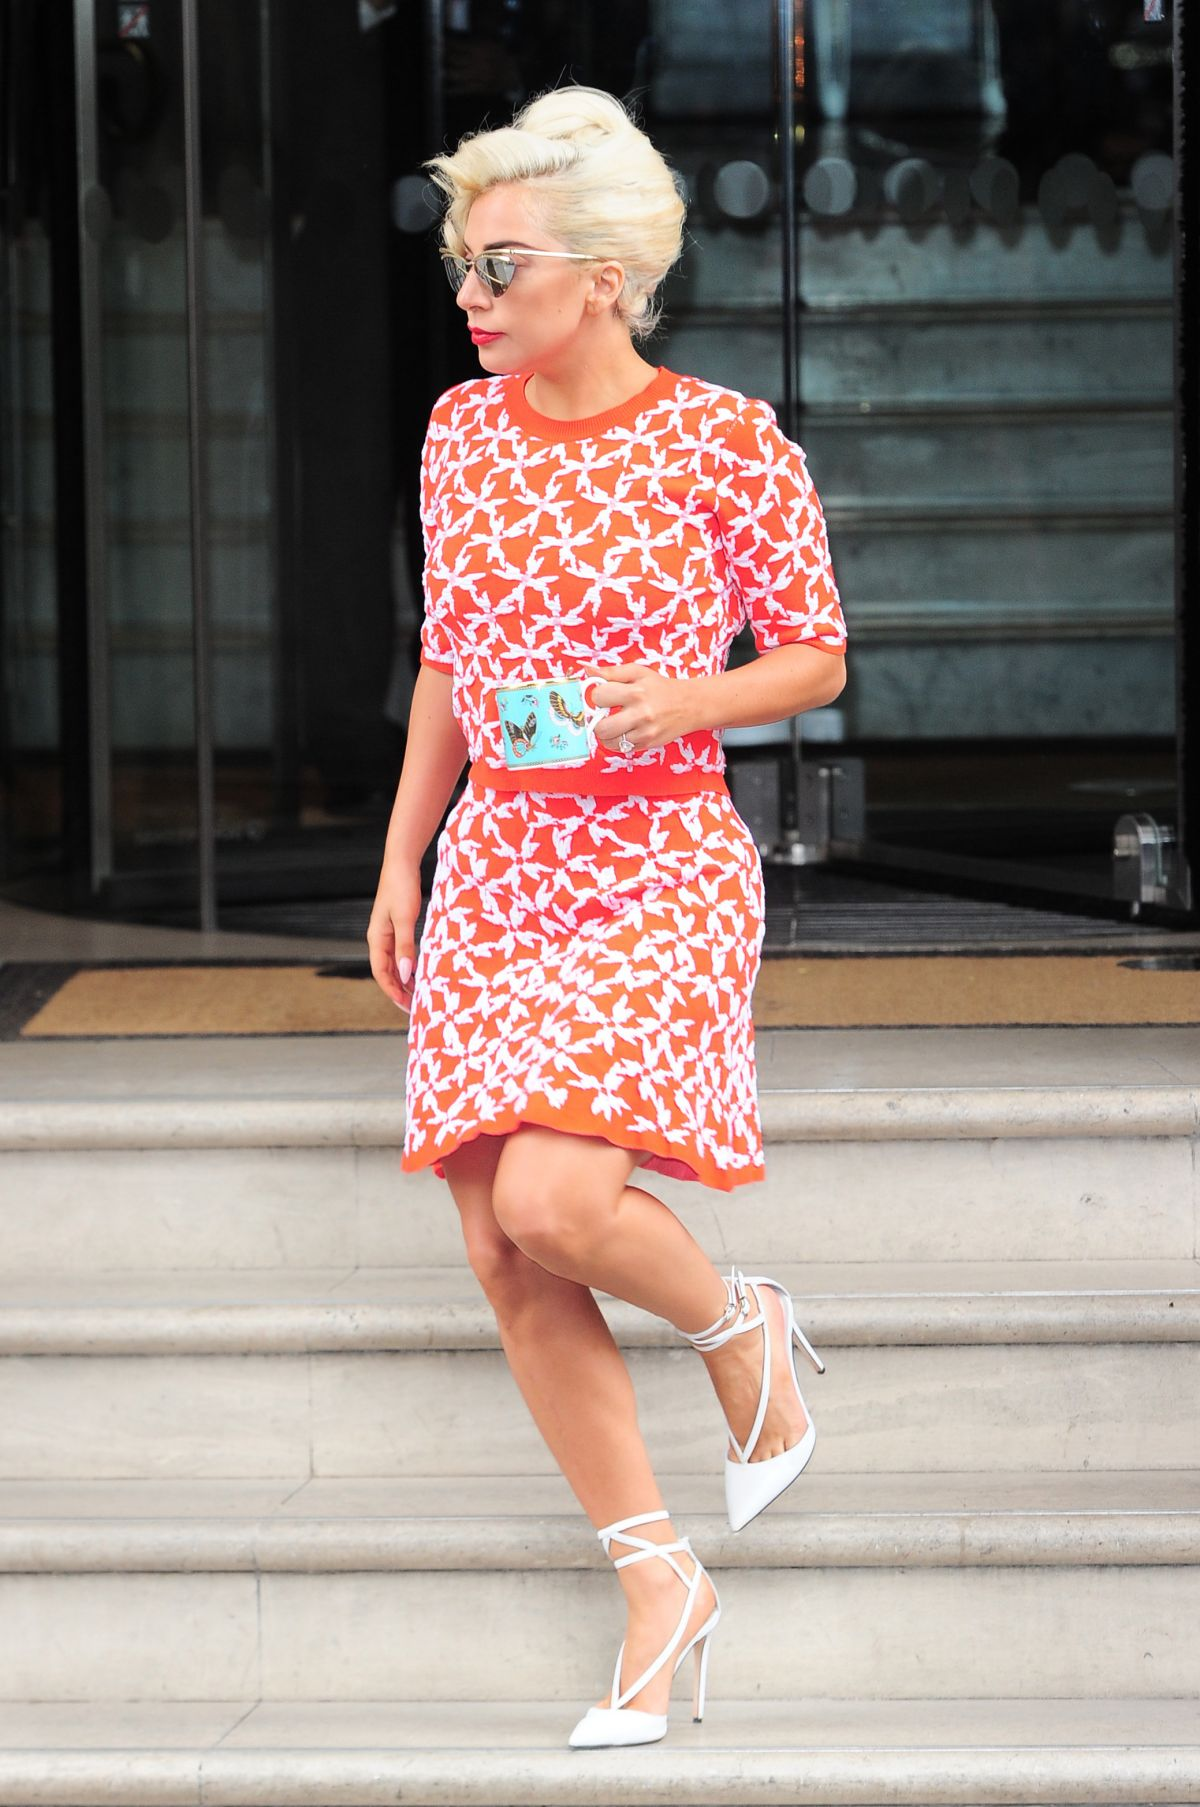 lady-gaga-out-and-about-in-london-06-09-